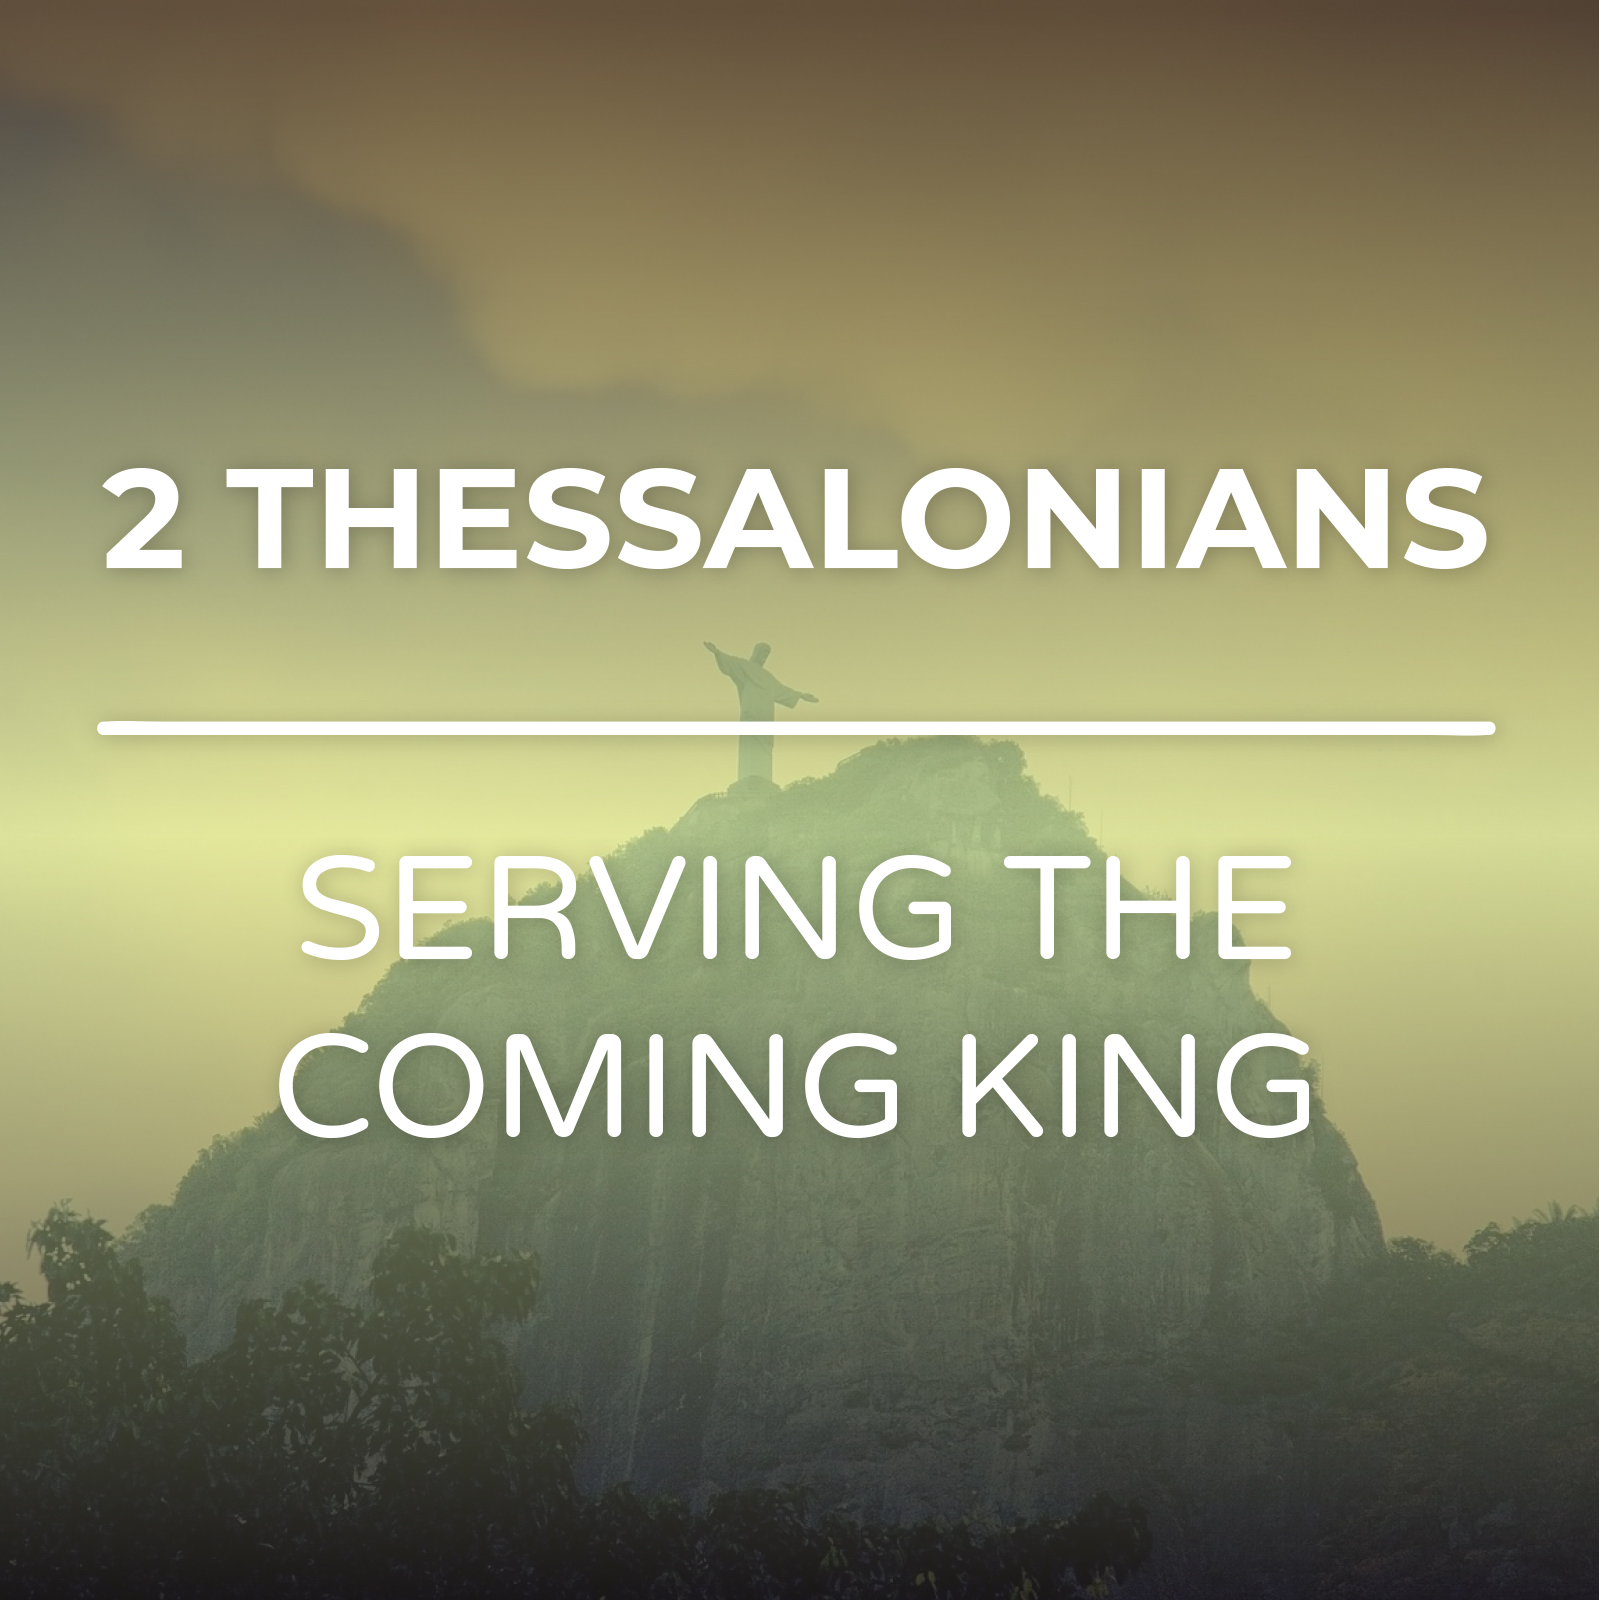 2 Thessalonians - Serving The Coming King Sermon Series - Hope Church Huddersfield